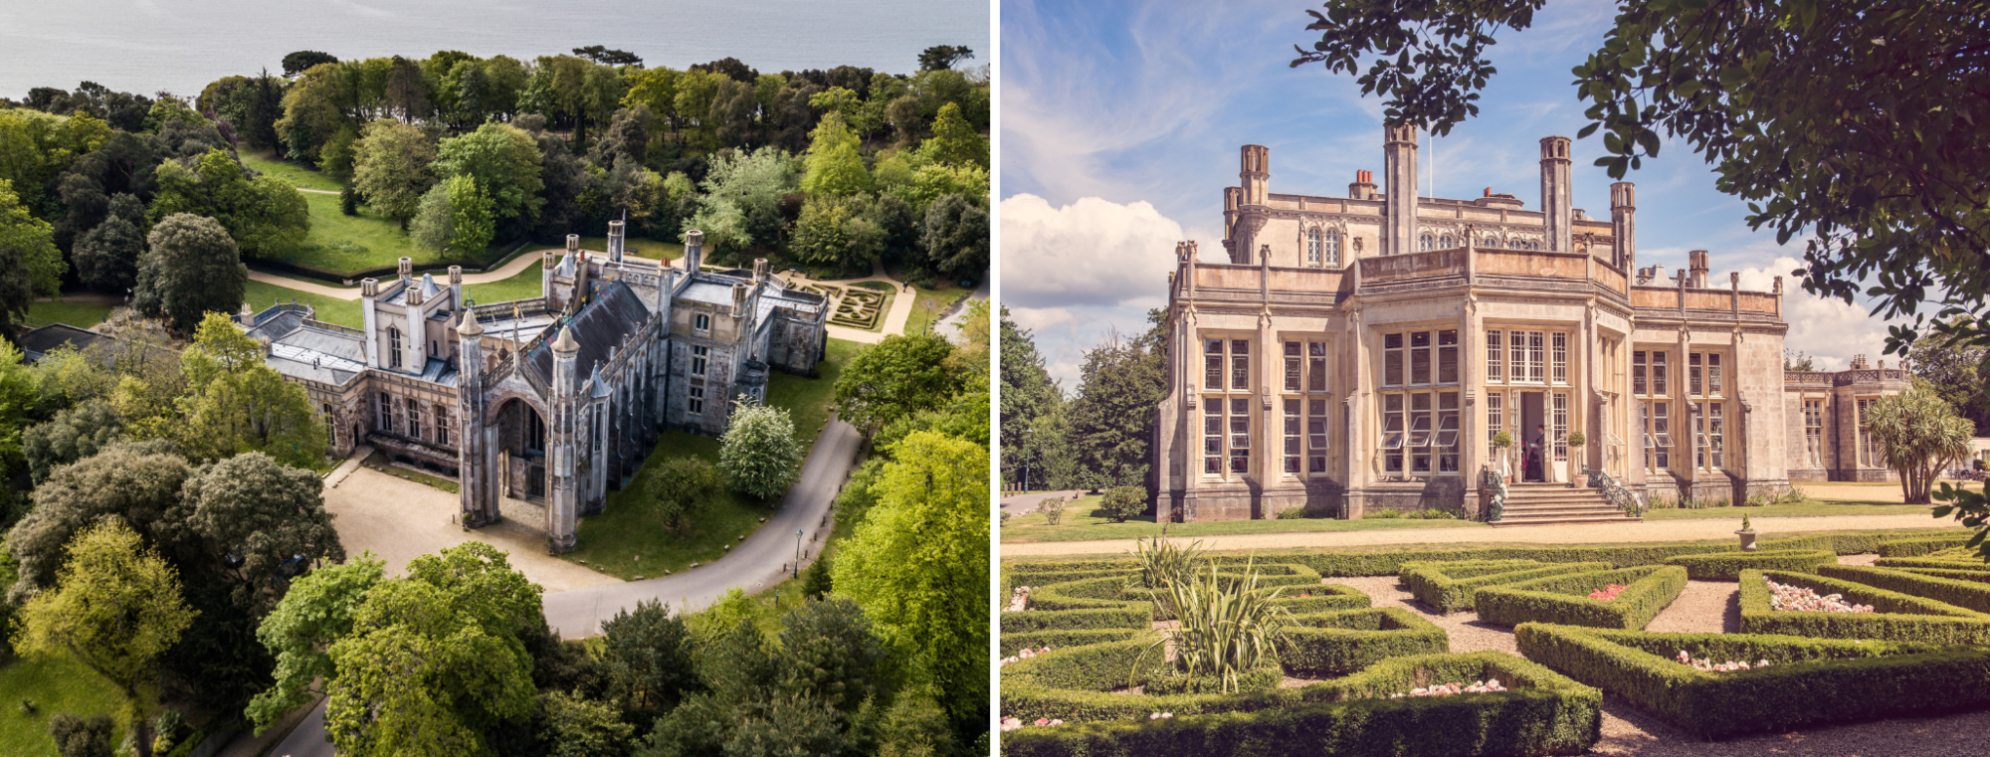 Aerial Shot of Highcliffe Castle and its beautiful green grounds, plus the Wintergardens with the green parterre are infront